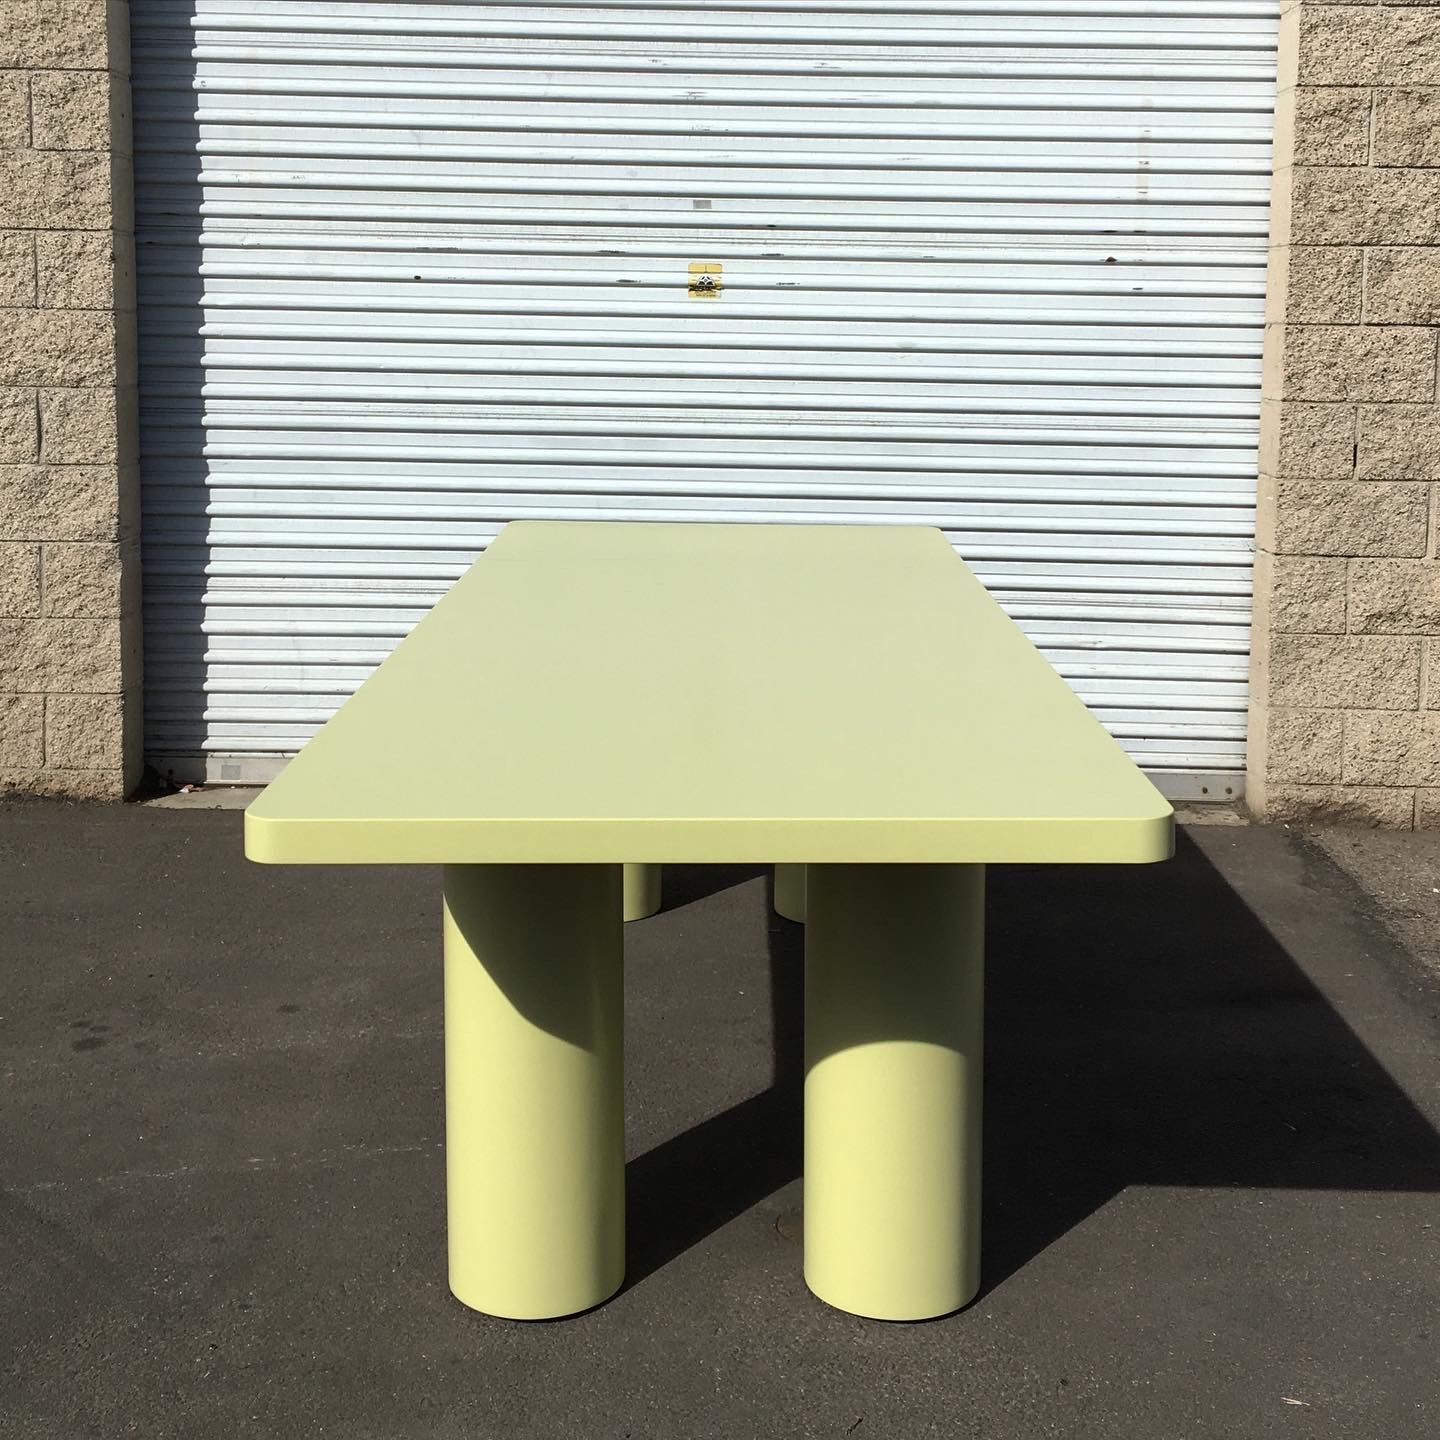 Four Cylinder Display Table product image 1